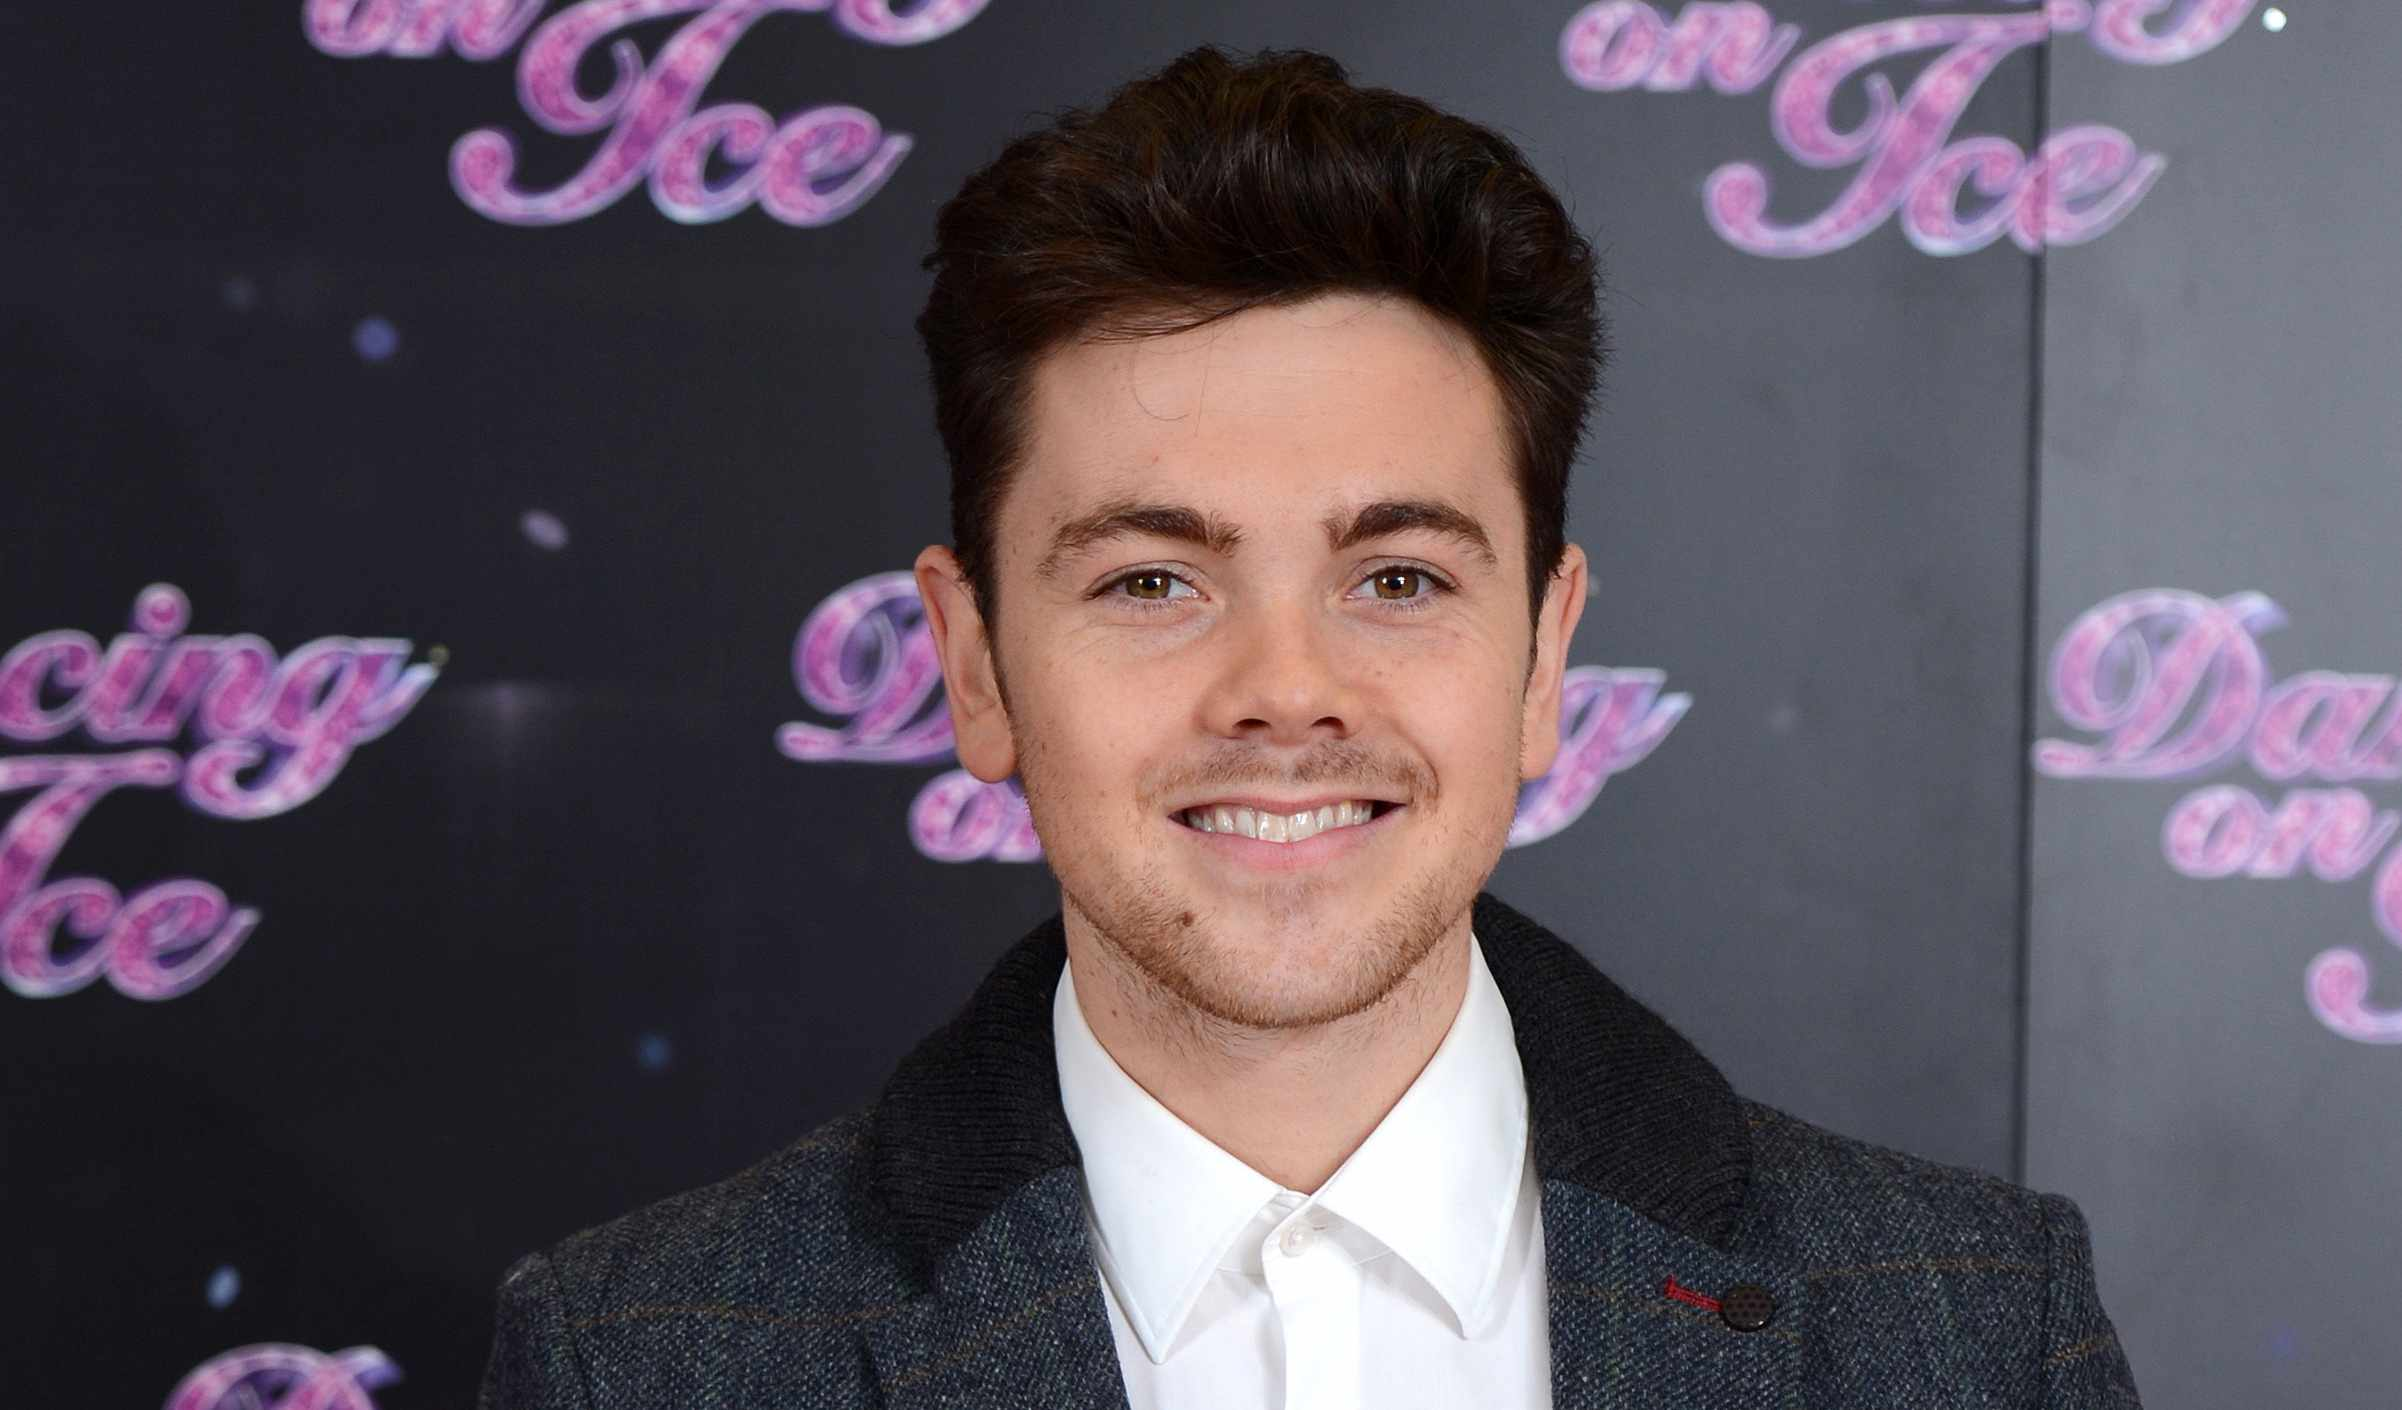 Dancing on Ice Ray Quinn